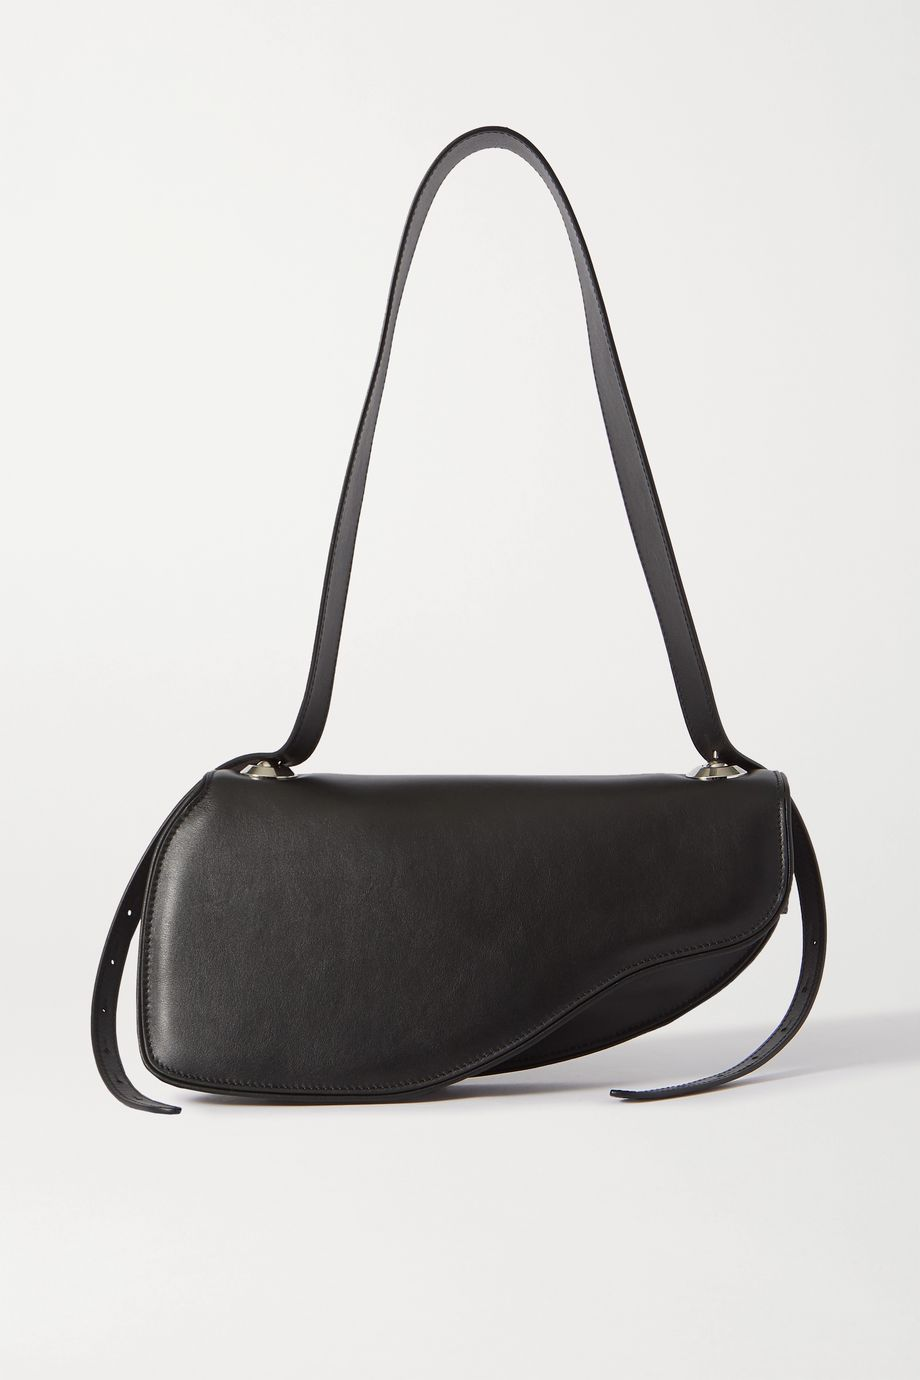 Ratio et Motus Holster leather shoulder bag